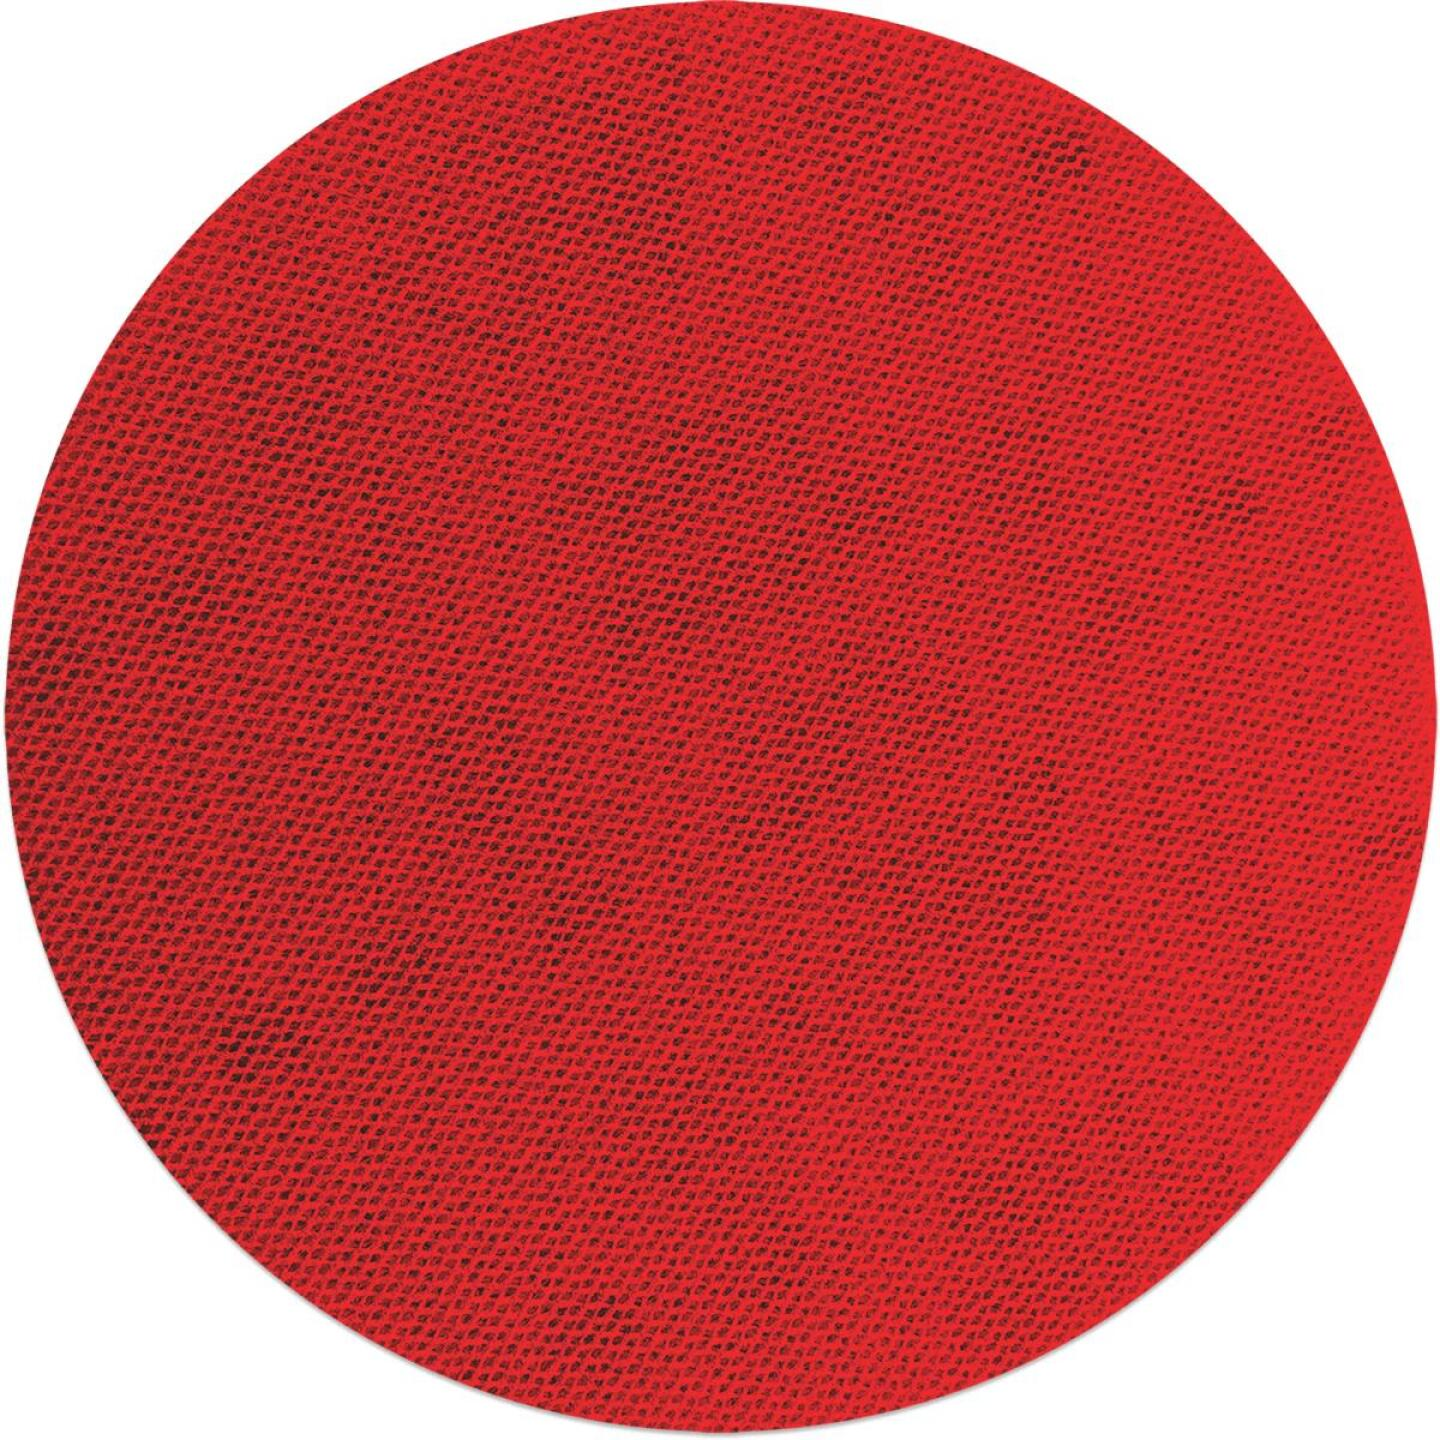 Diablo SandNet 5 In. 150 Grit Sanding Disc with Connection Pad (40-Pack) Image 1